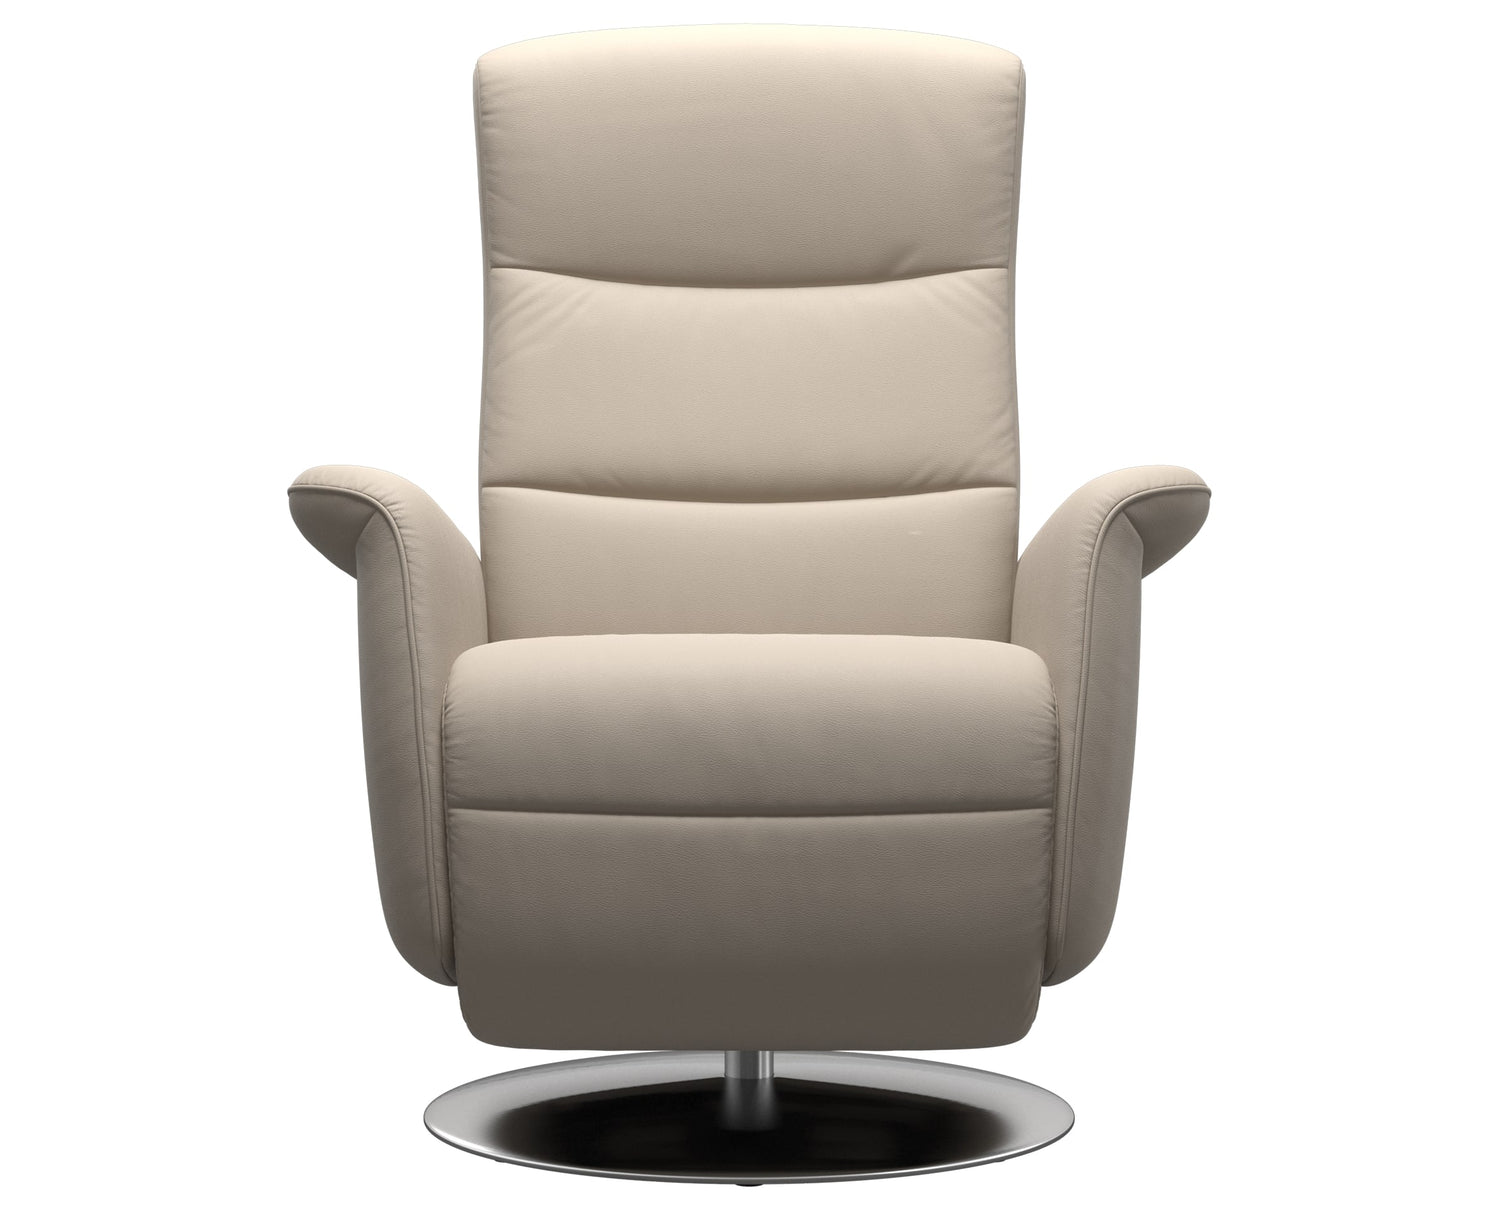 Paloma Leather Fog S/M/L & Steel Base | Stressless Mike Recliner | Valley Ridge Furniture